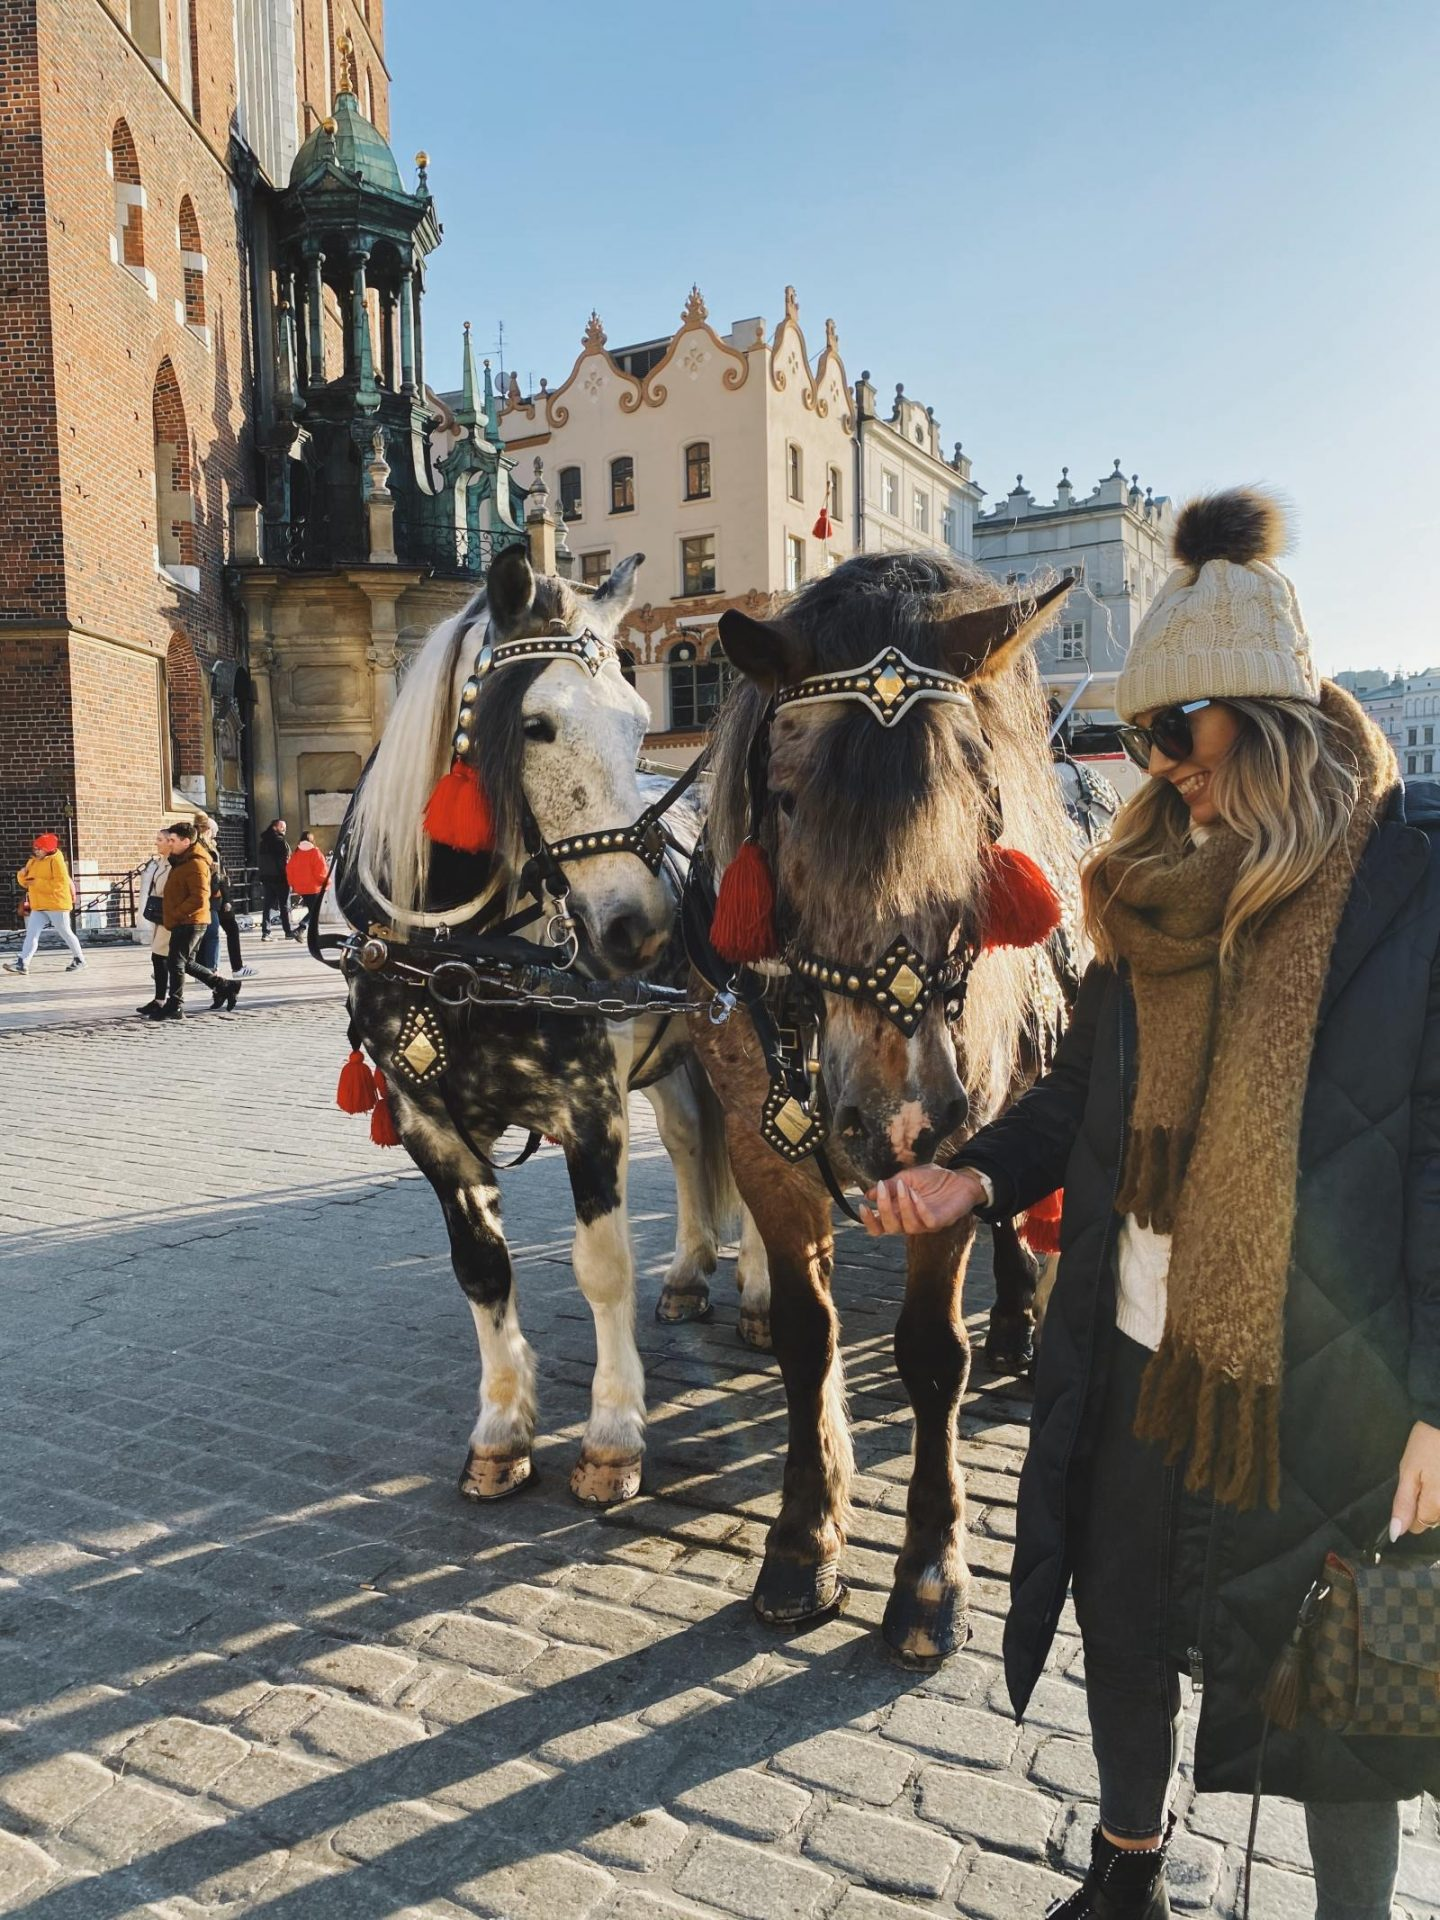 Horse and carriage ride Krakow